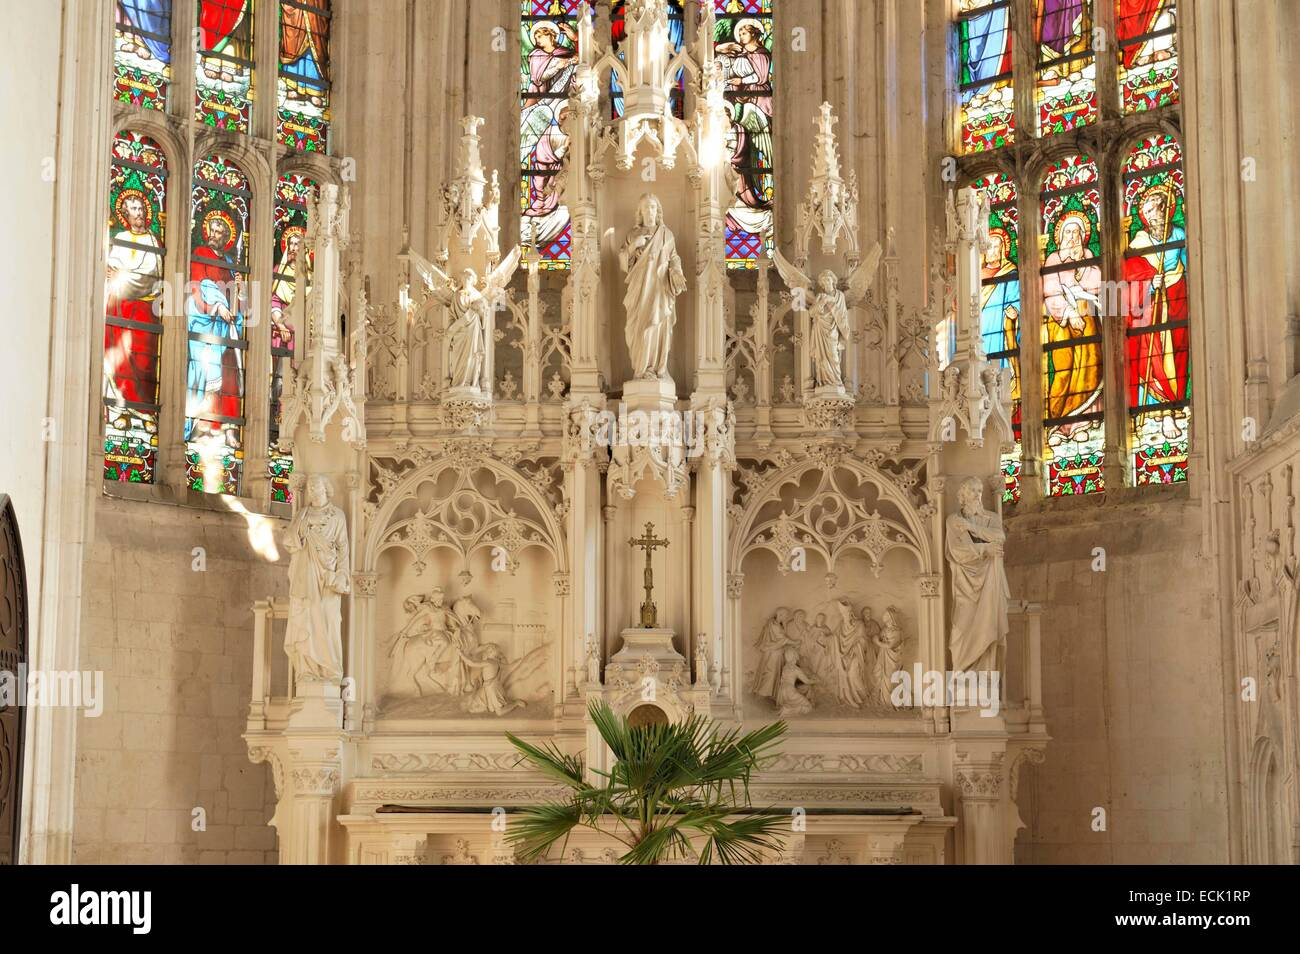 France, Pas de Calais, Auxi le ChΓteau, flamboyant Gothic style Church of Saint Martin dating from the 16th century, - Stock Image